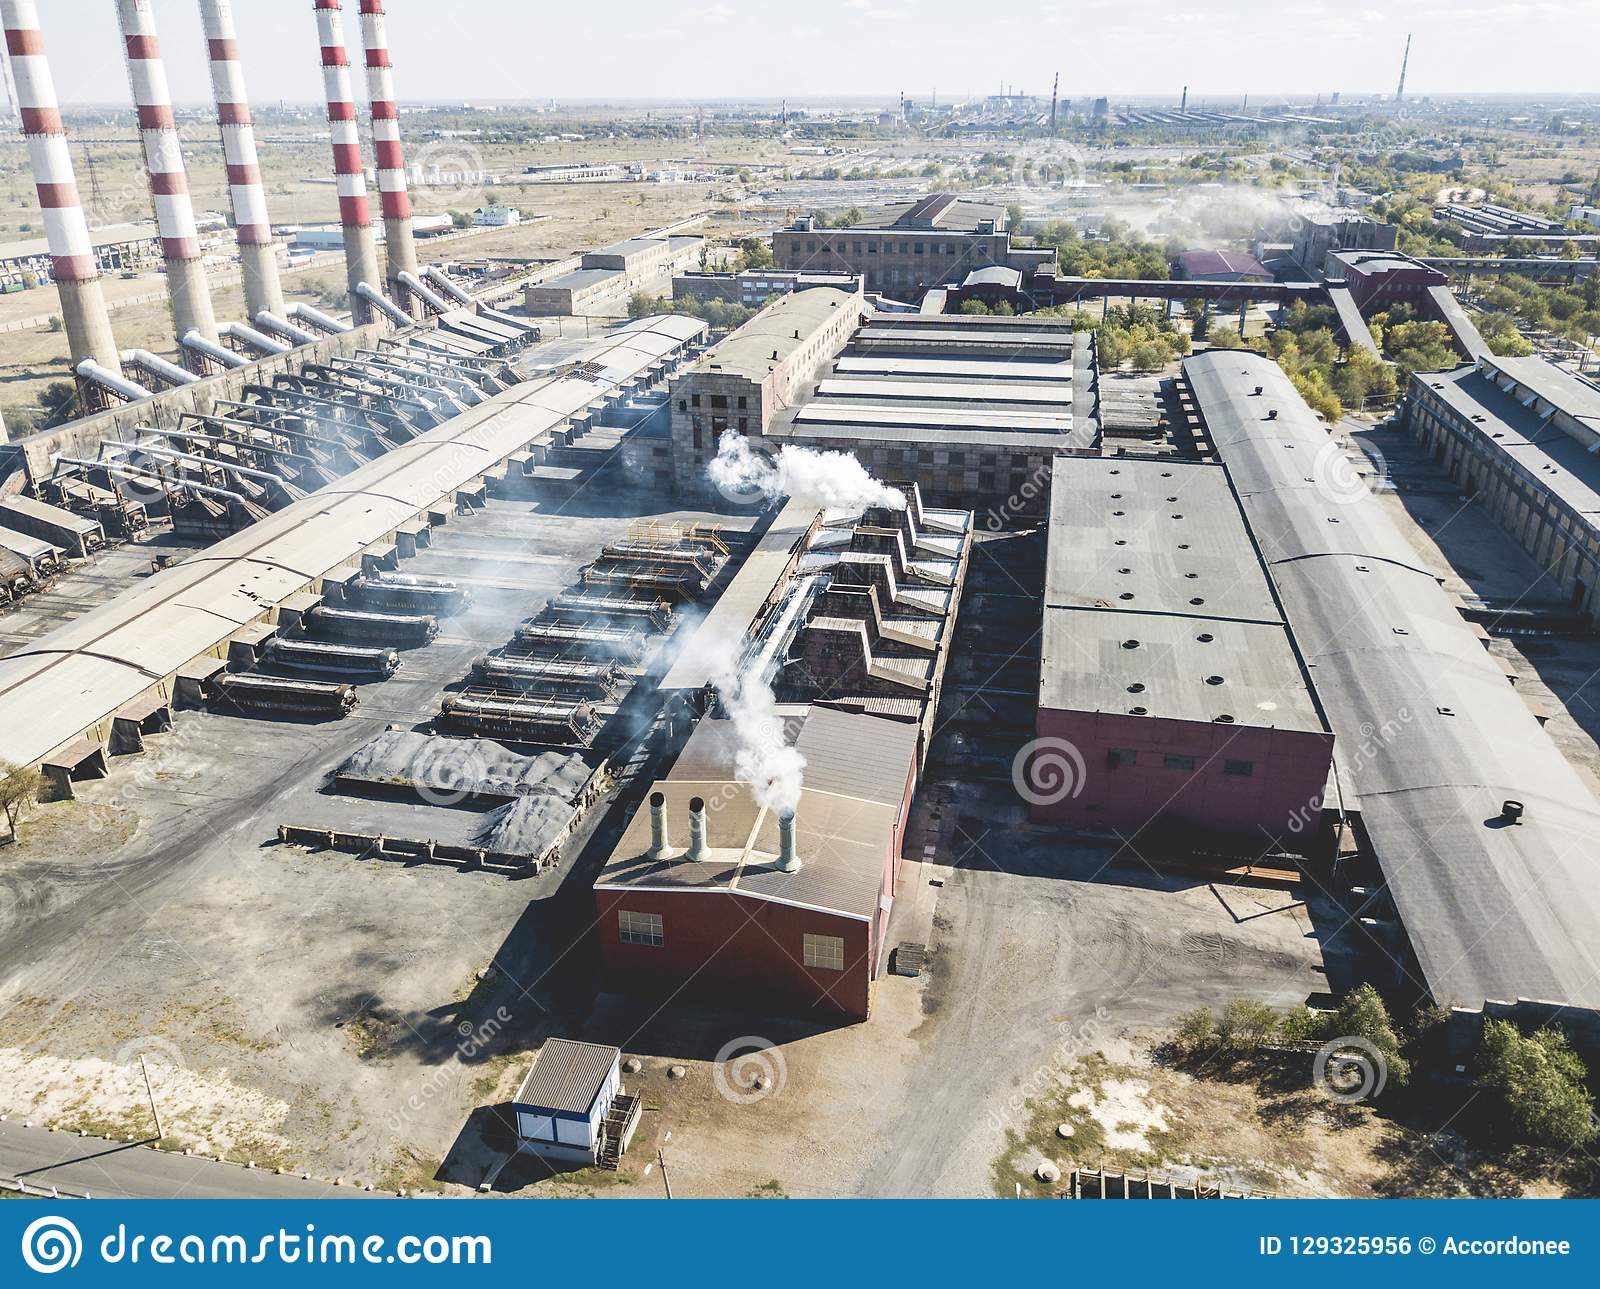 Aerial view of factory pipes emit smoke with harmful substances, air pollution f